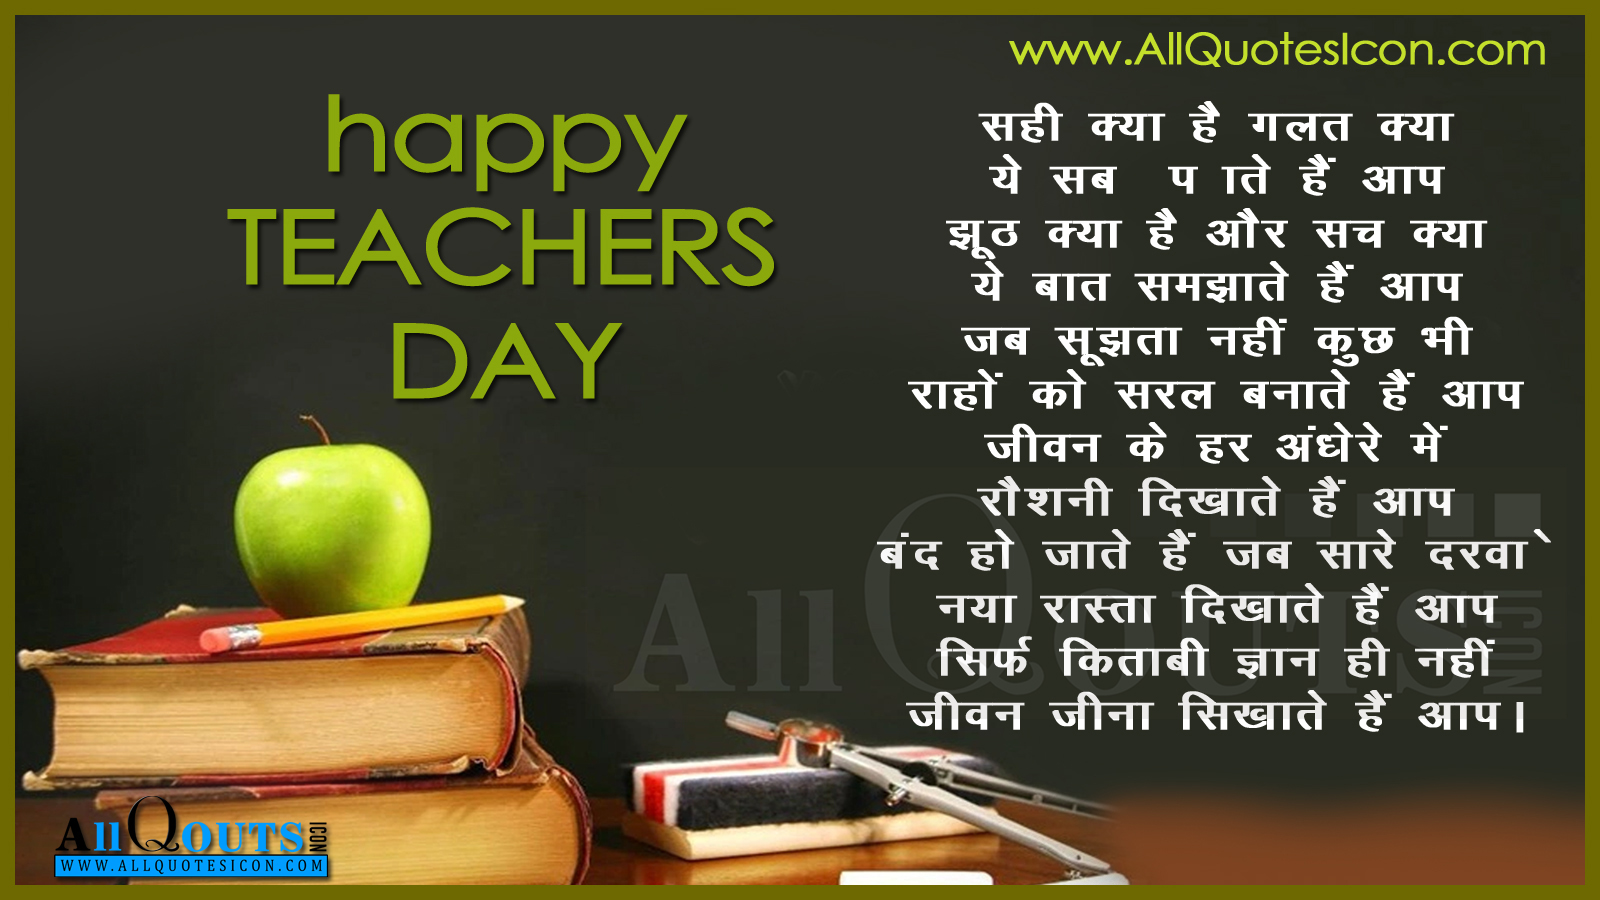 Best Hindi Quotes And Thoughts About Happy Teachers Day Greetings